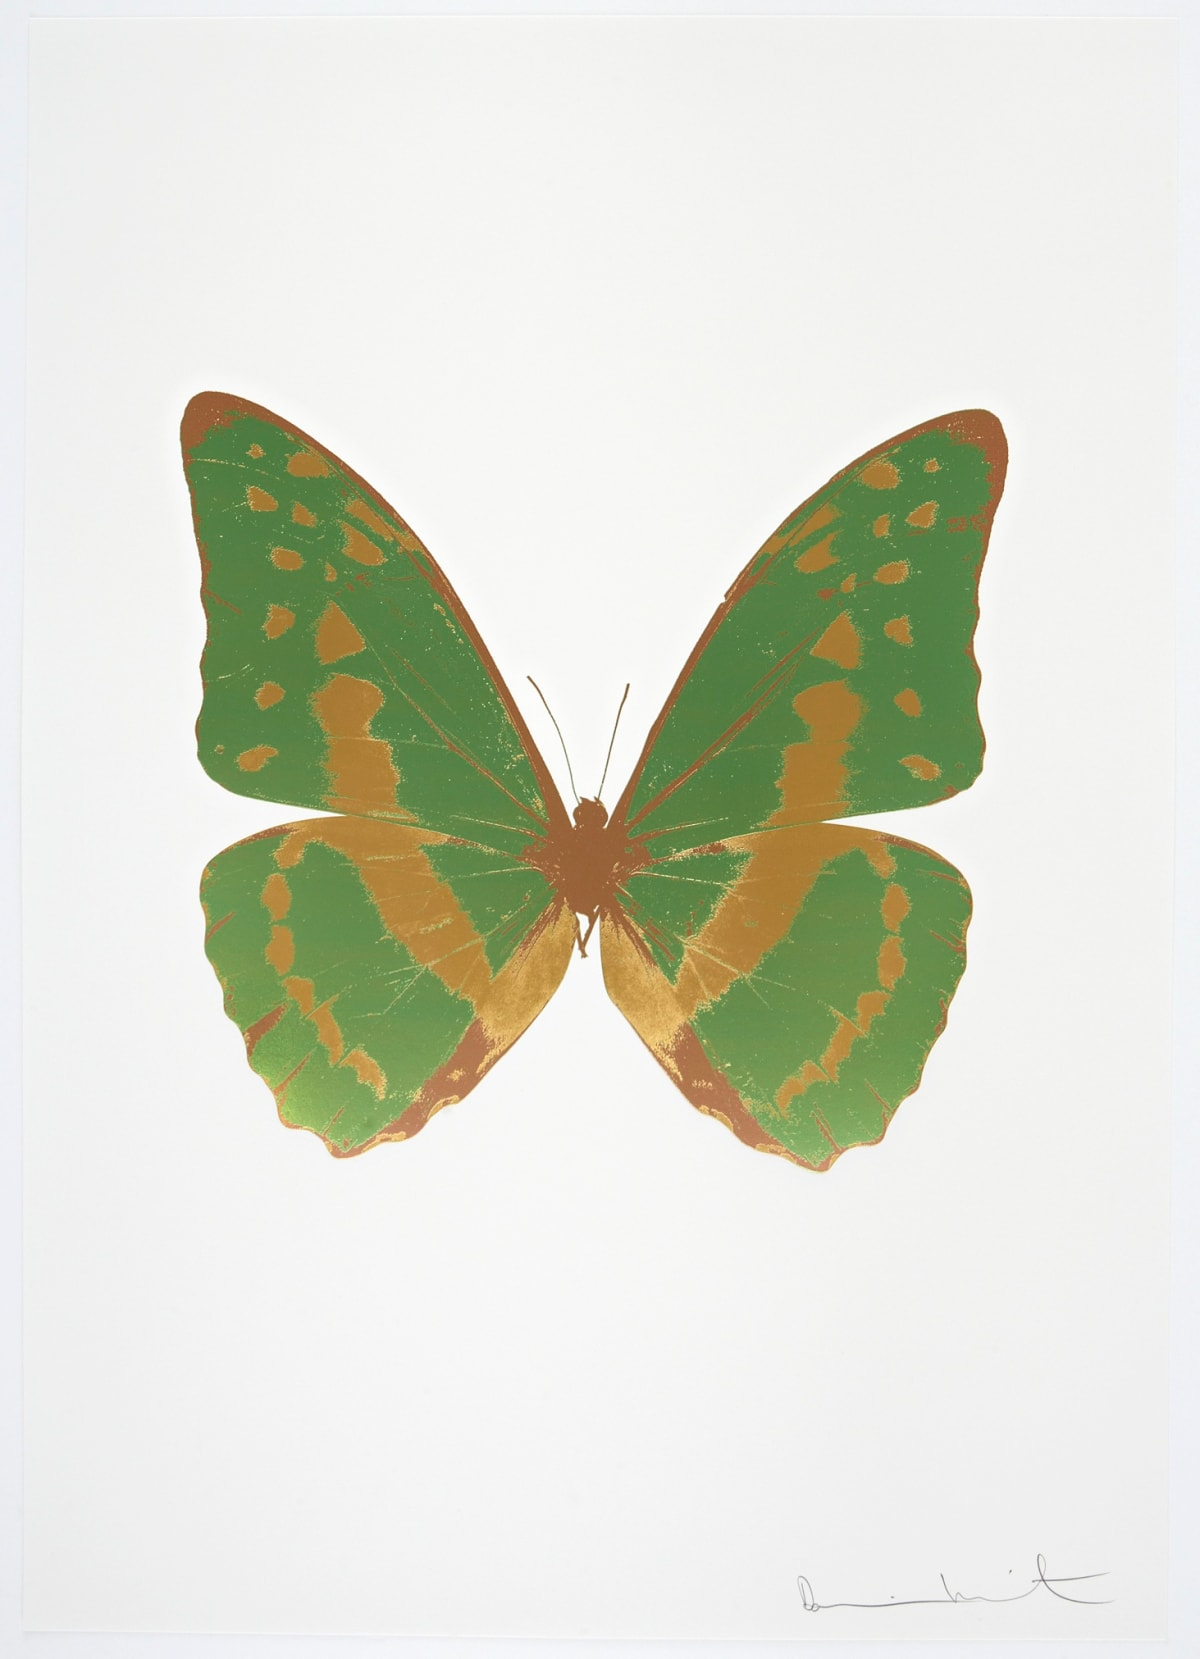 Damien Hirst The Souls III - Leaf Green/African Gold/Rustic Copper, 2010 3 colour foil block on 300gsm Arches 88 archival paper. Signed and numbered. Published by Paul Stolper and Other Criteria 72 x 51cm OC7977 / 660-80 Edition of 15